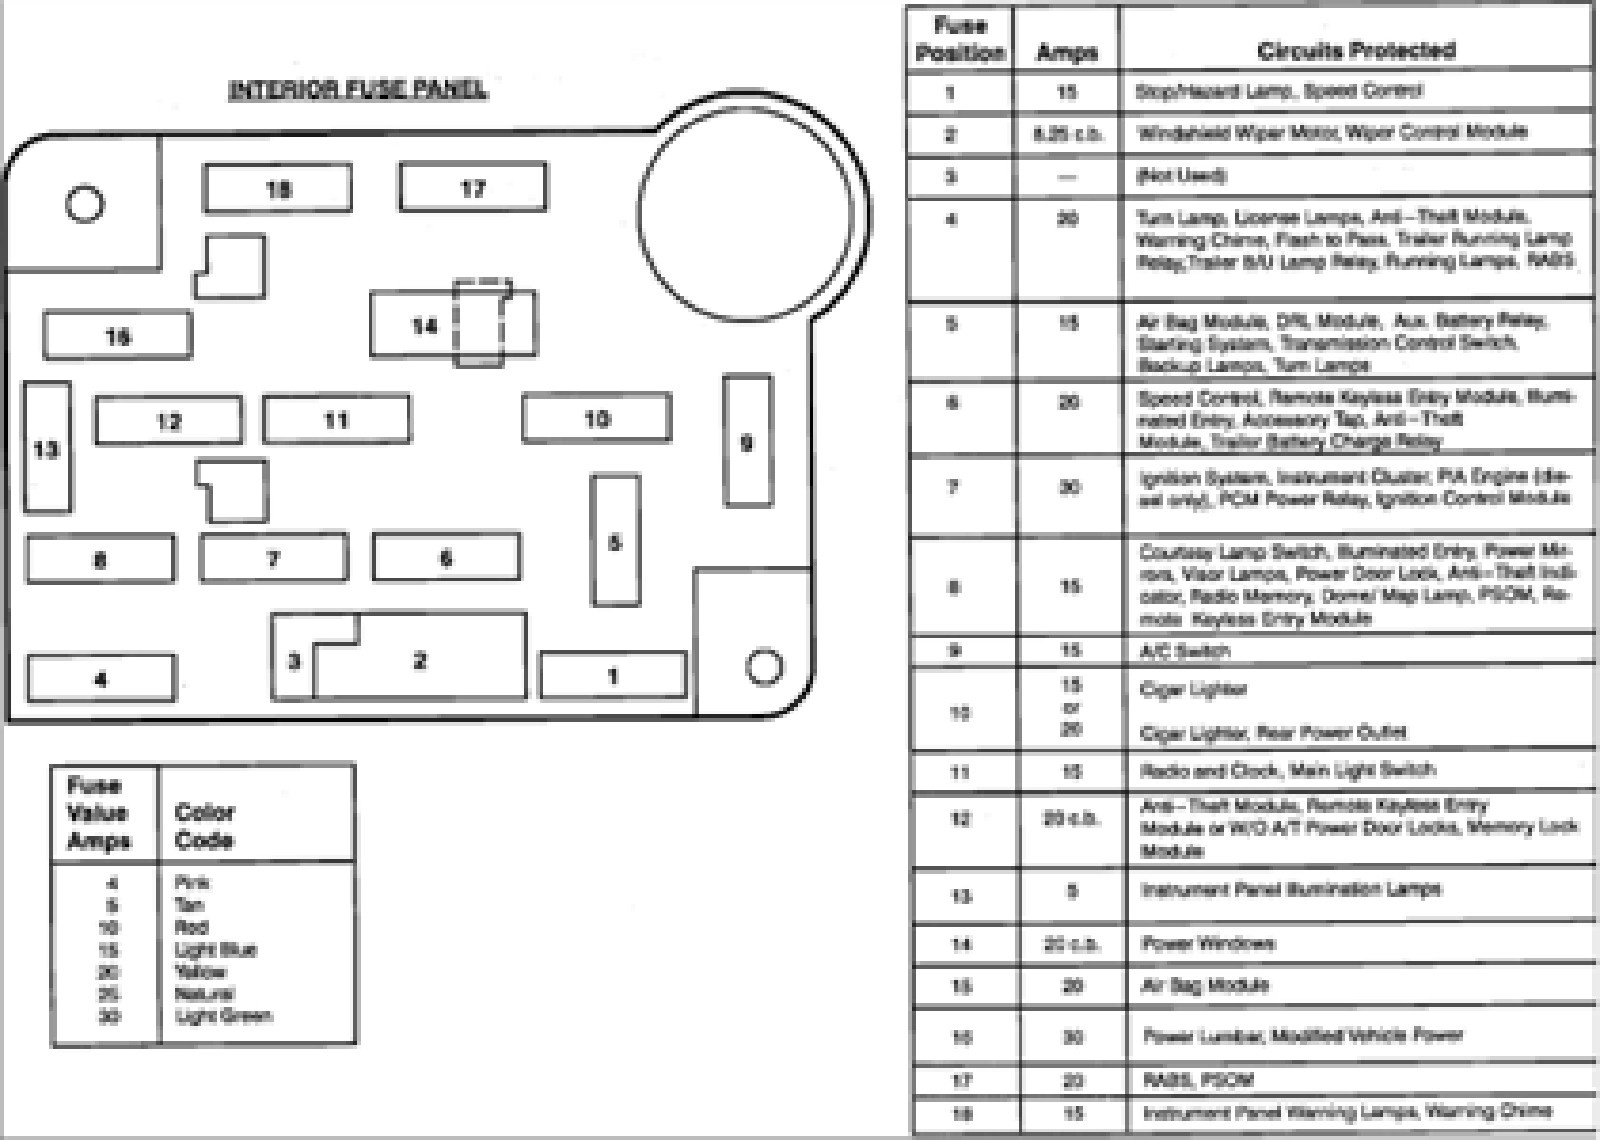 Da89 1999 Ford E 450 Bus Fuse Box Diagram Wiring Library